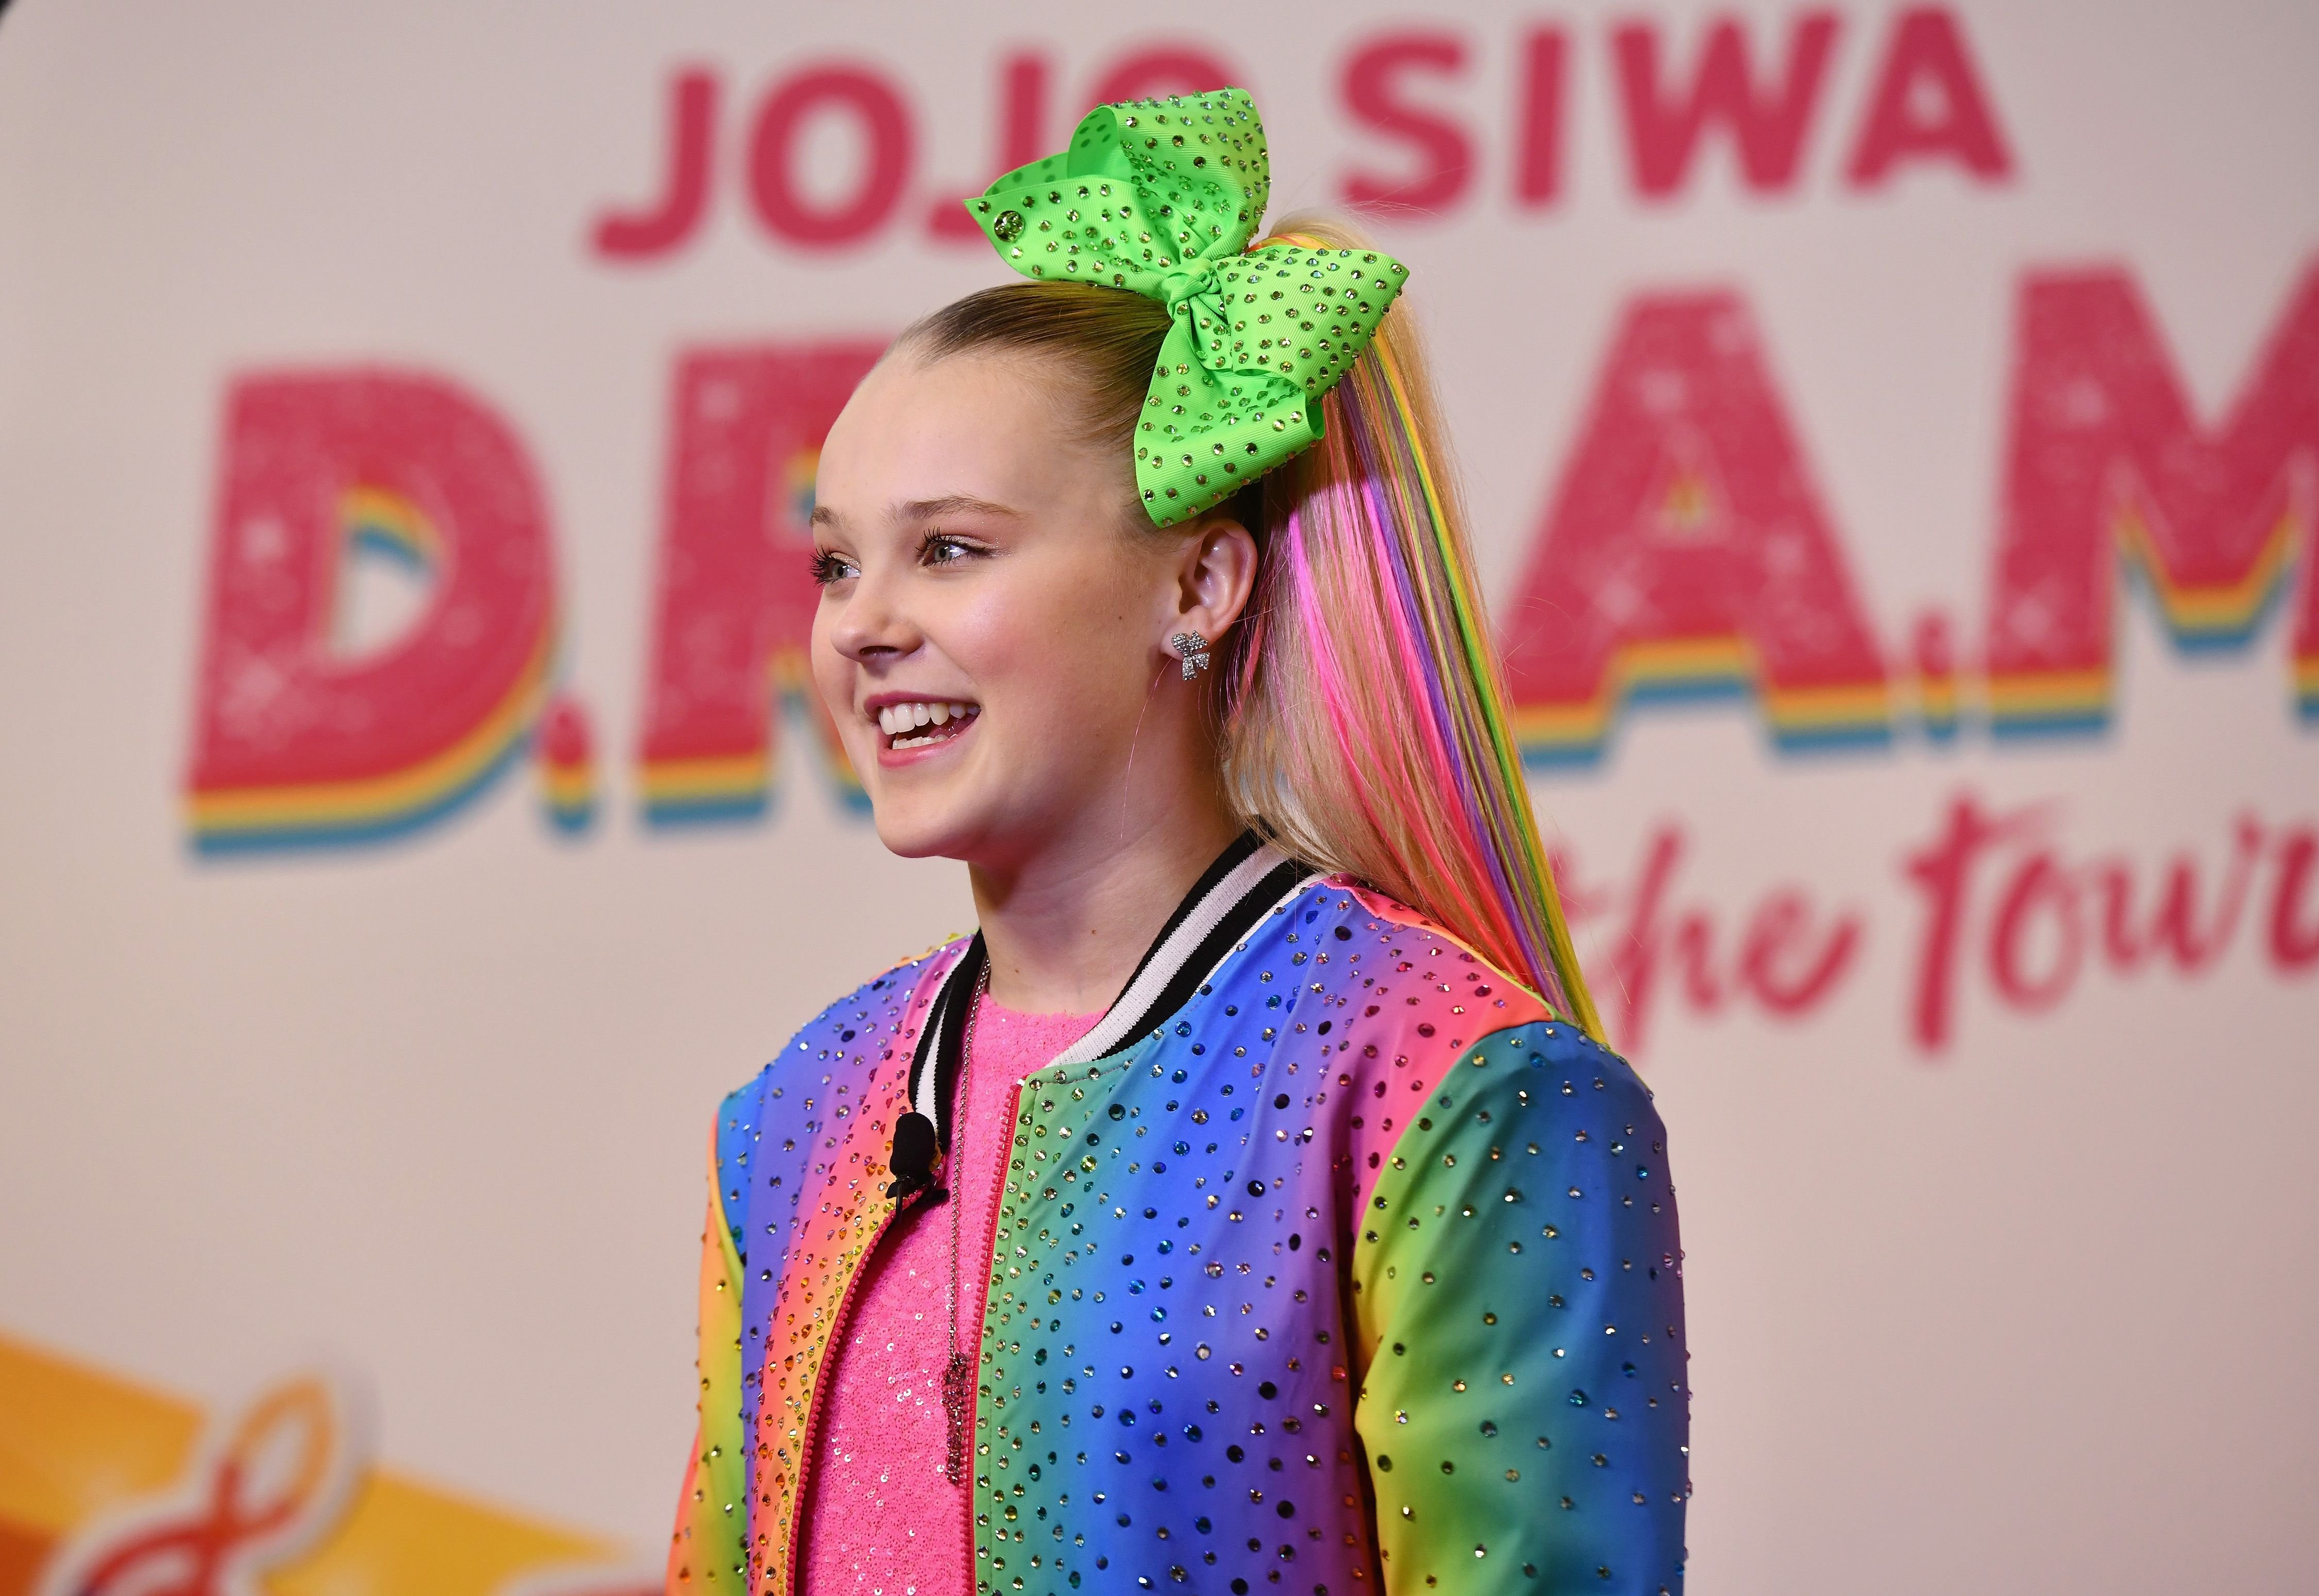 JoJo Siwa announces her upcoming EP and D.R.E.A.M. Tour at Sugar Factory on November 7, 2018, in New York | Photo: Noam Galai/Getty Images